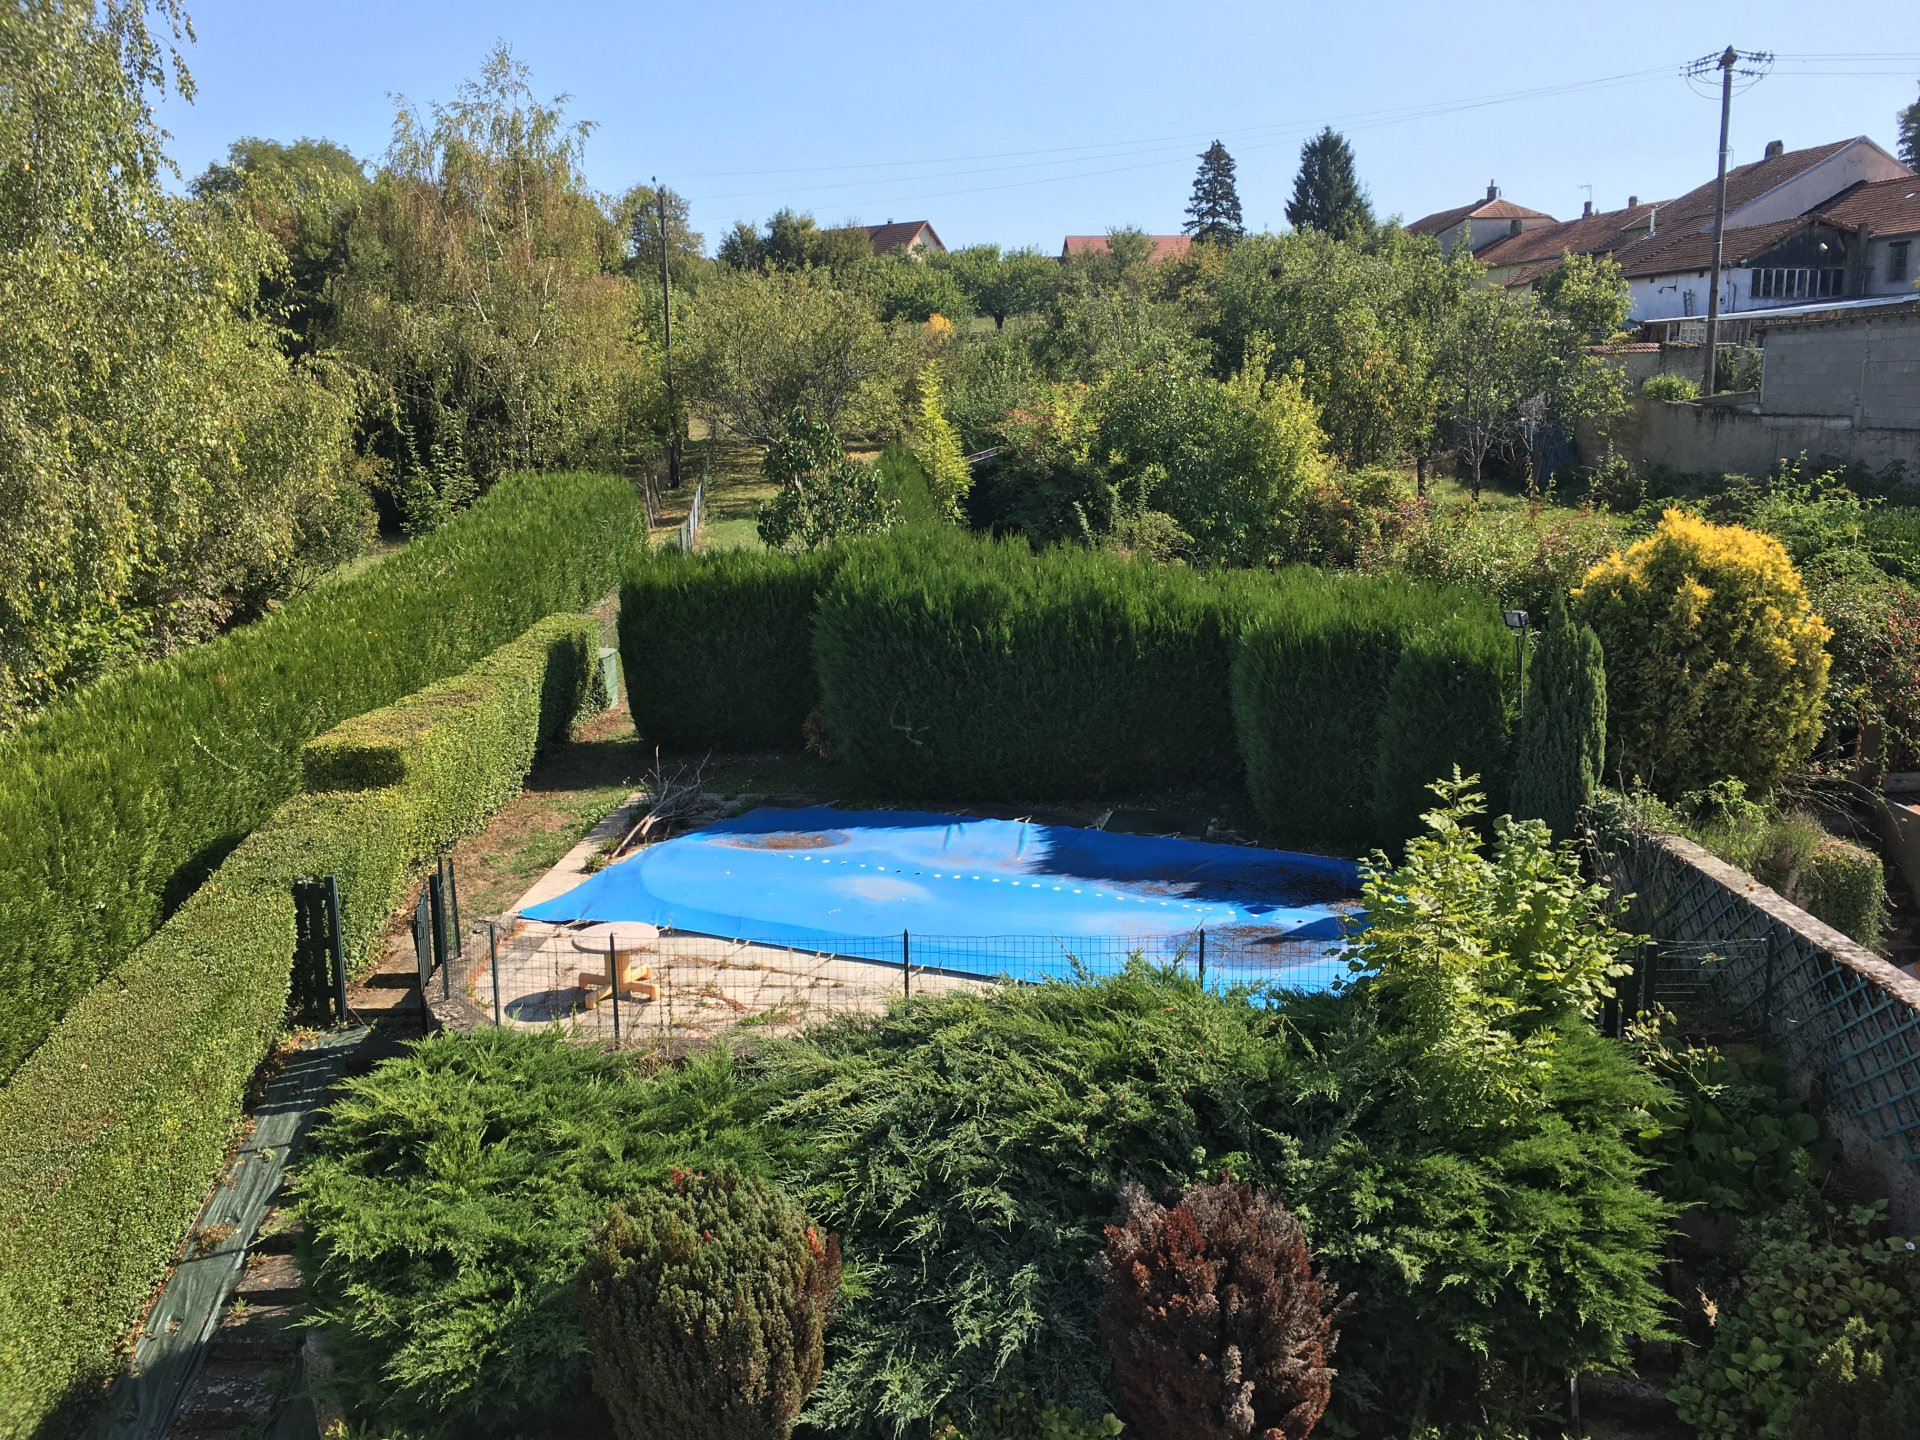 Comfortable, small house with swimming pool in picturesque village in Haute-Saône.